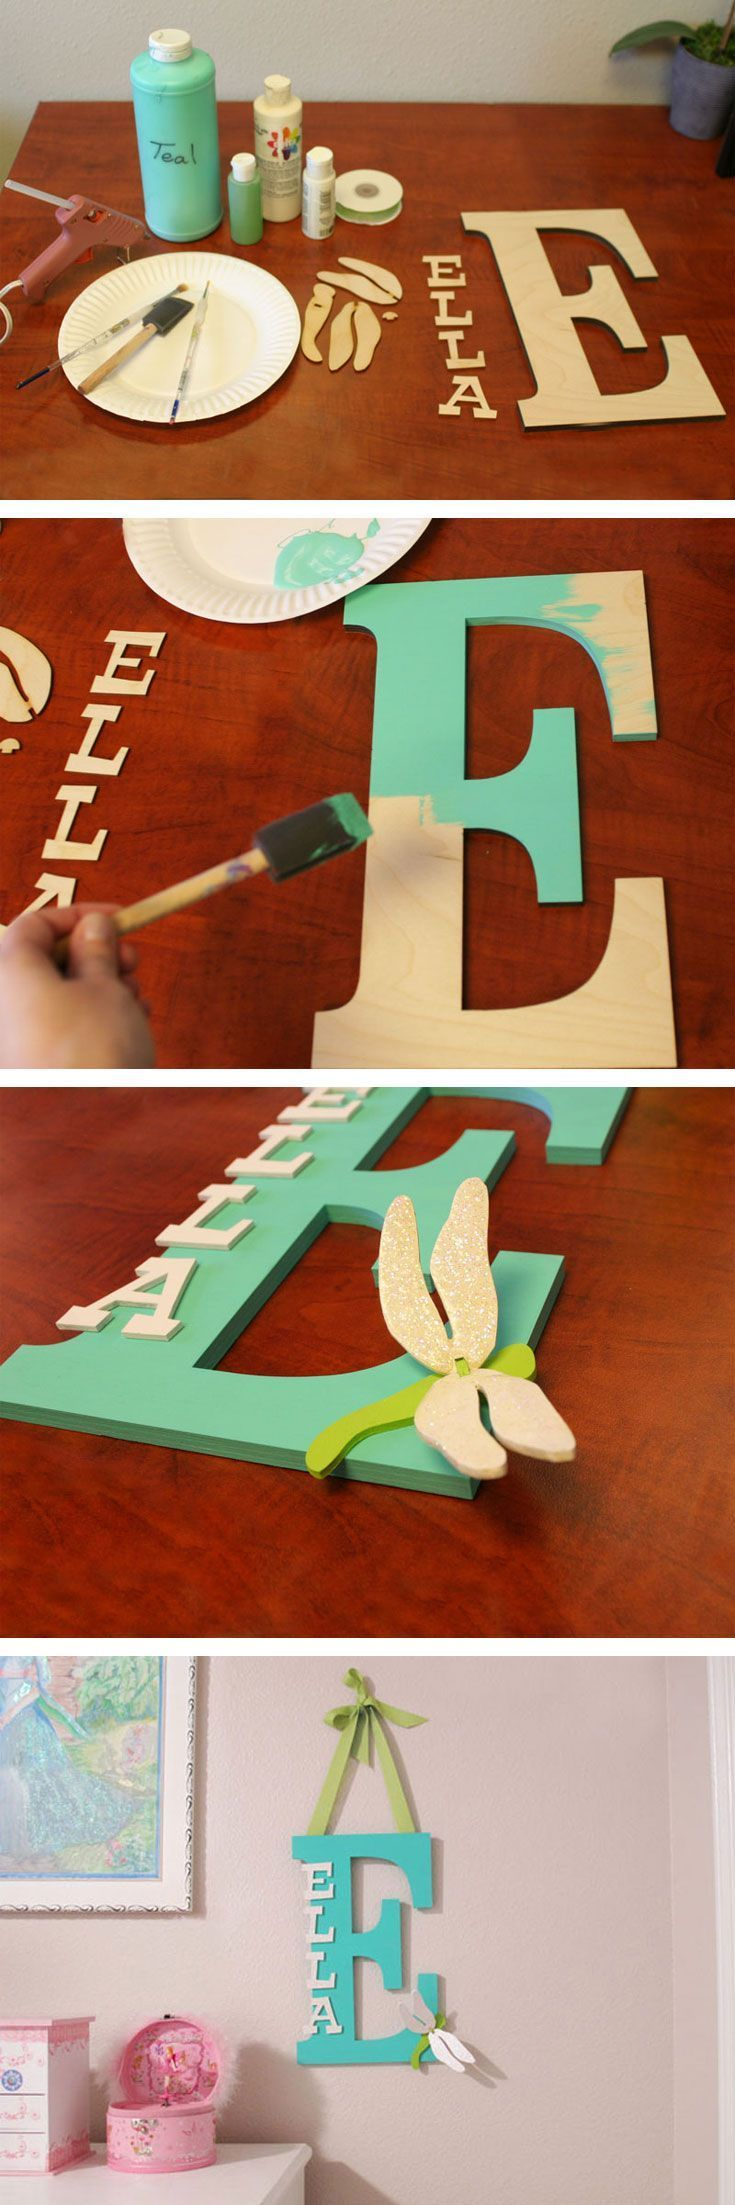 This would be cute to do with our last name for a front door